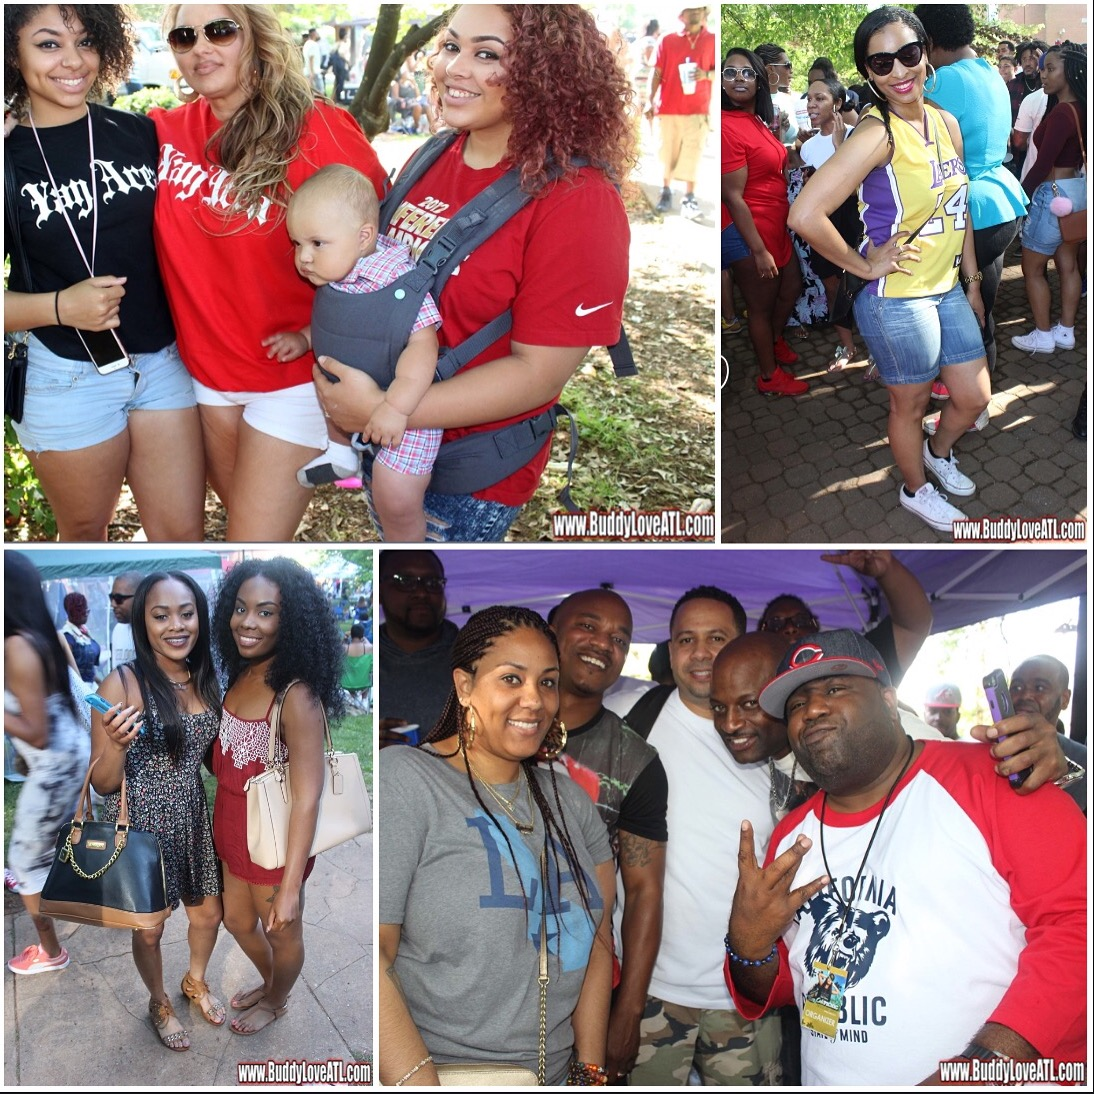 22nd Annual Cali Picnic 4.24.16